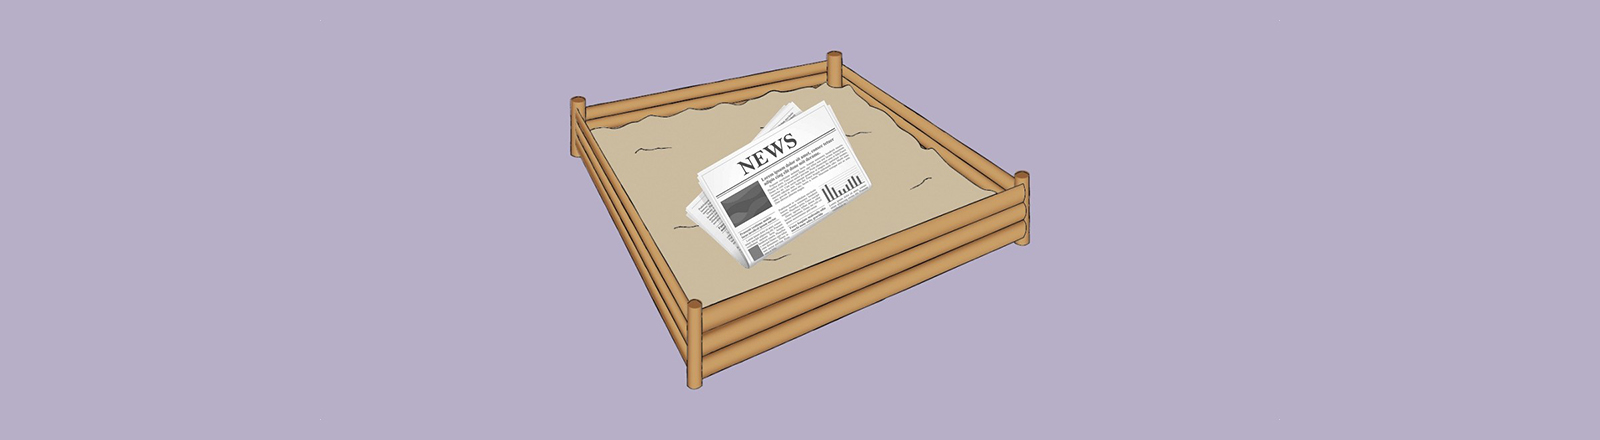 newspaper-sandbox-eye